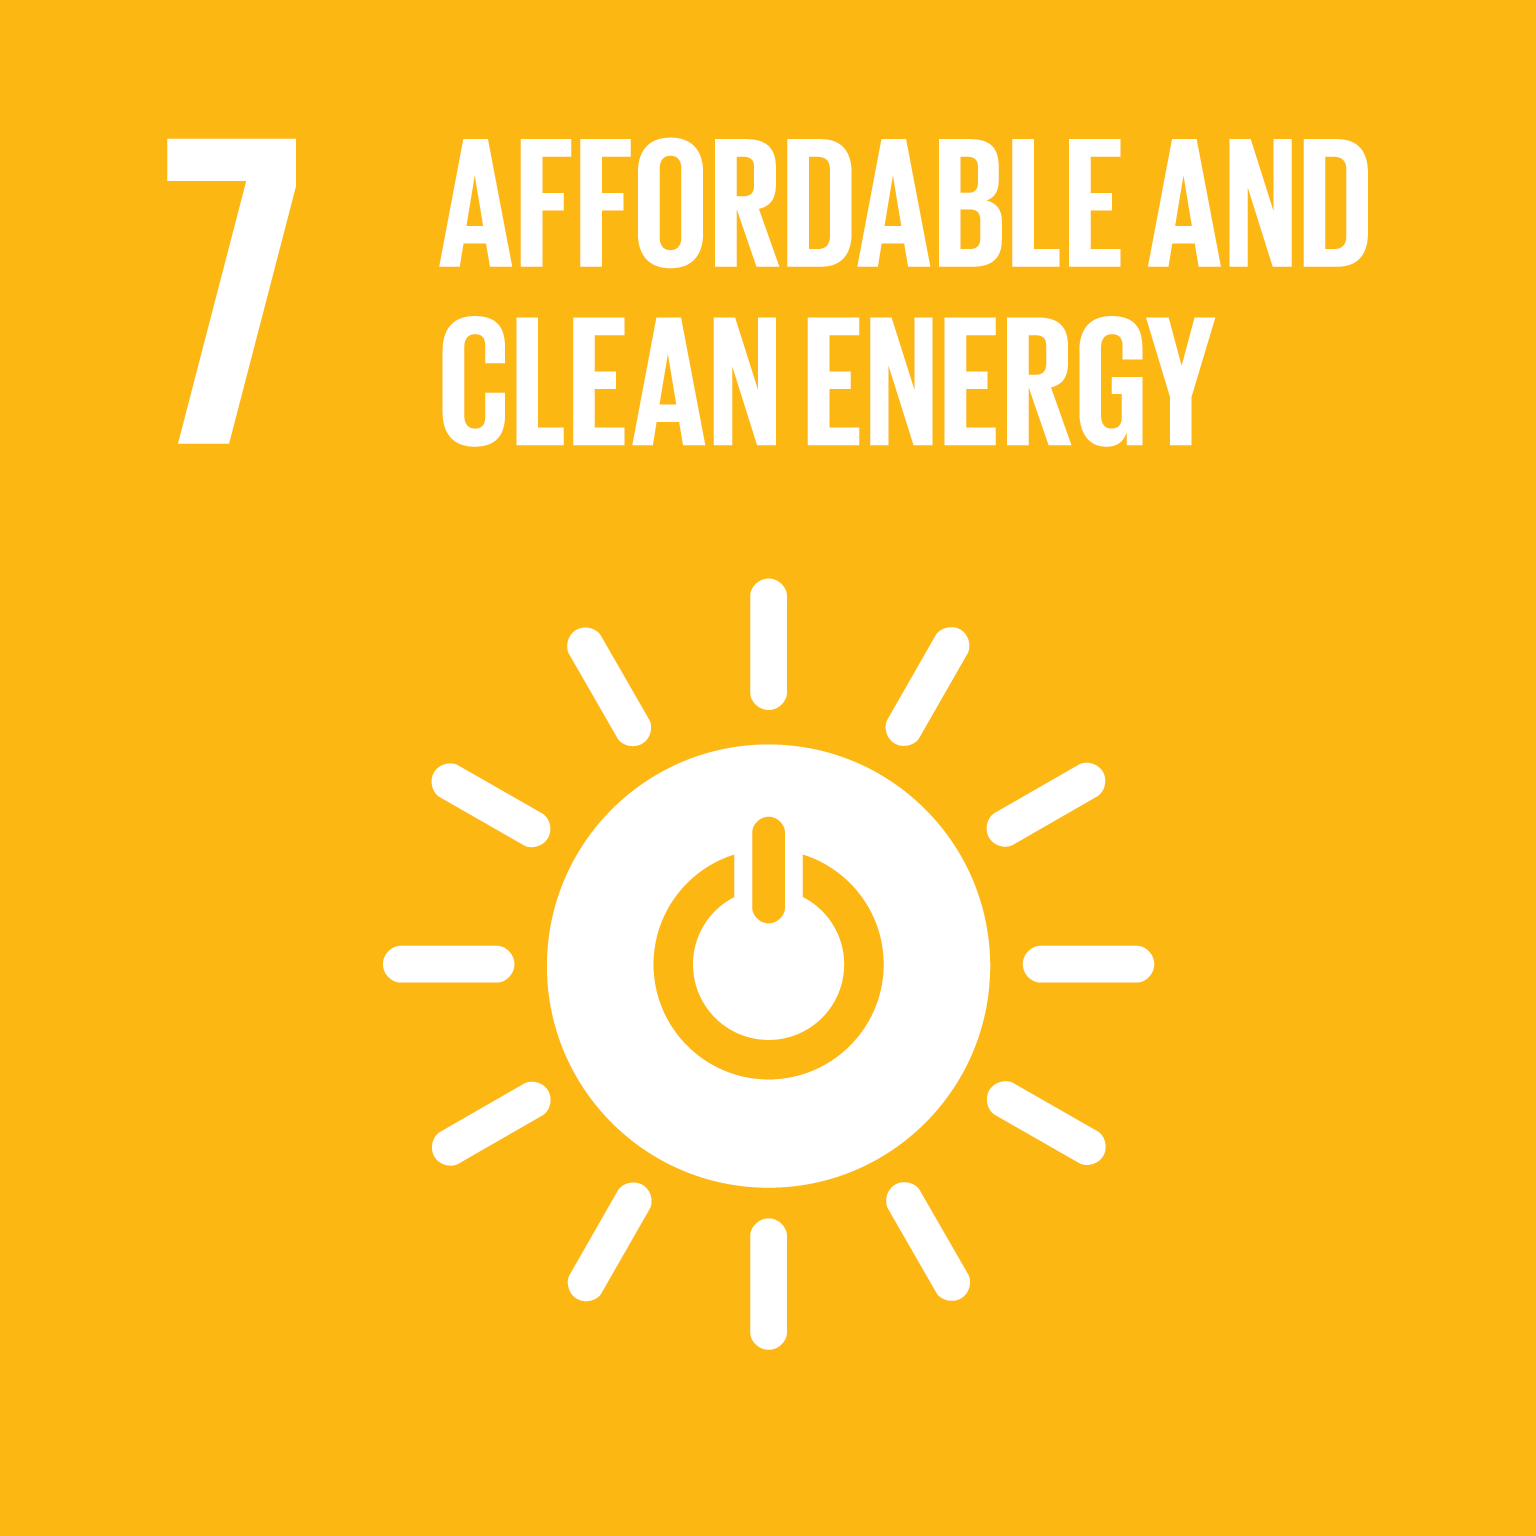 Sustainable Development Goal 7 icon